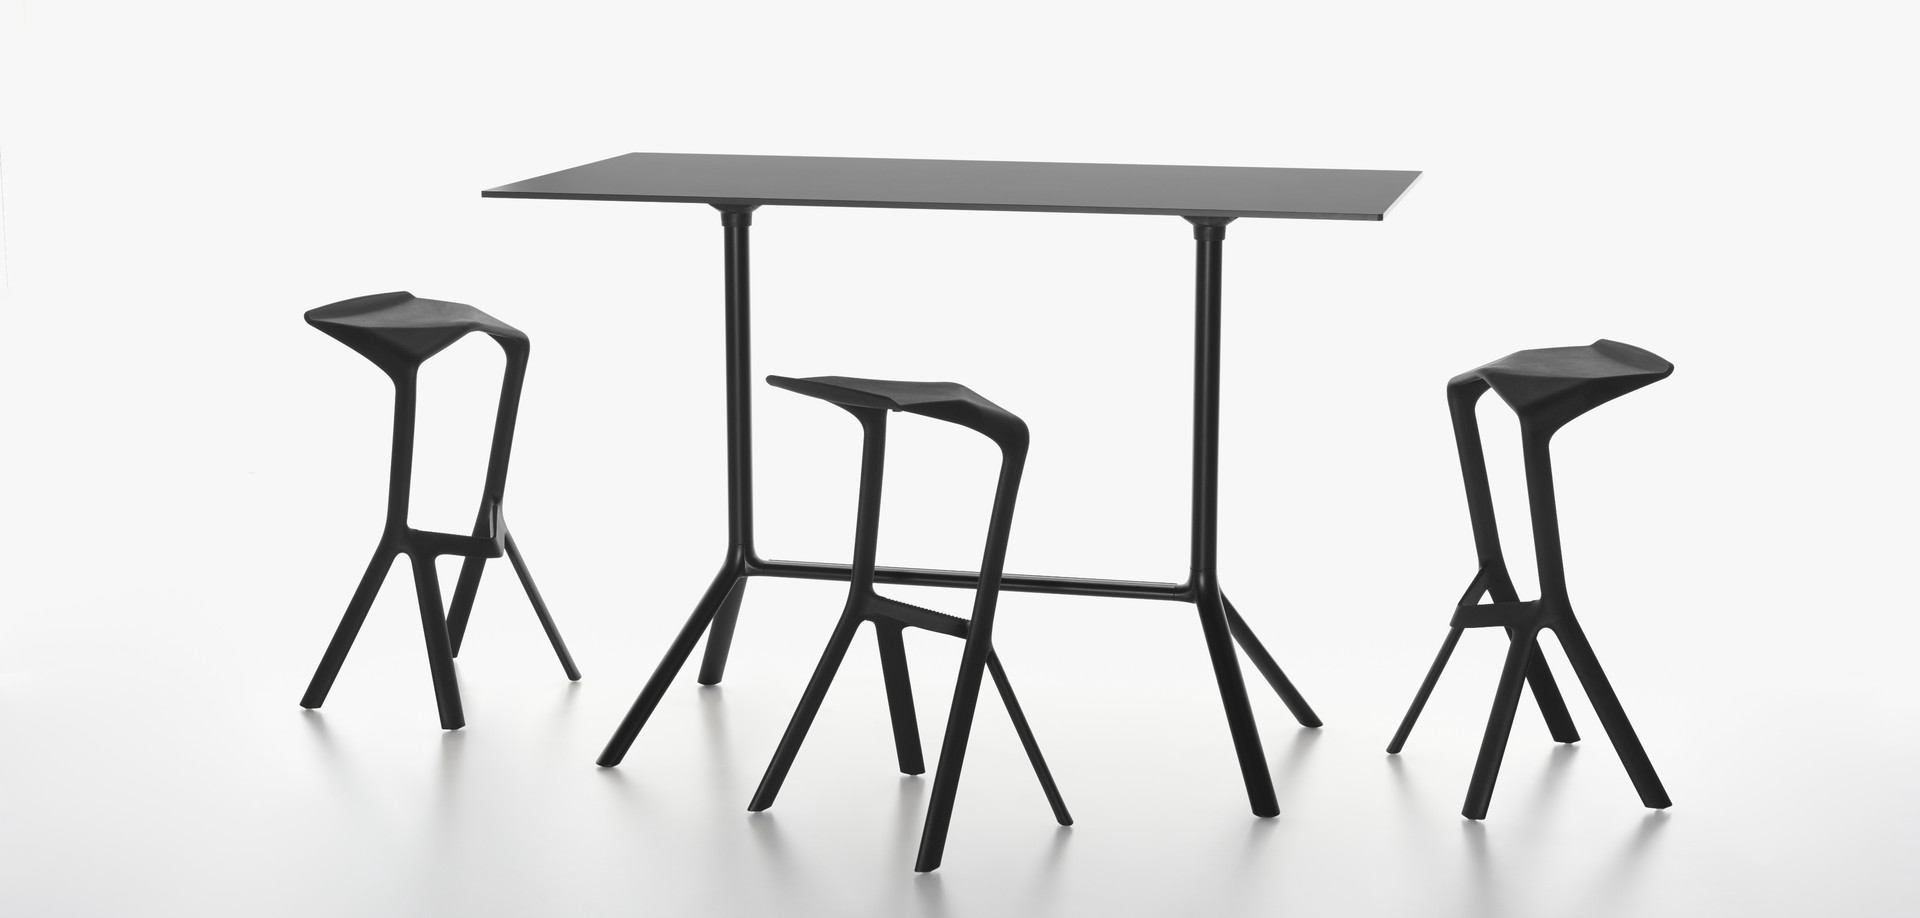 PLANK - MIURA stool, black and MIURA table, black